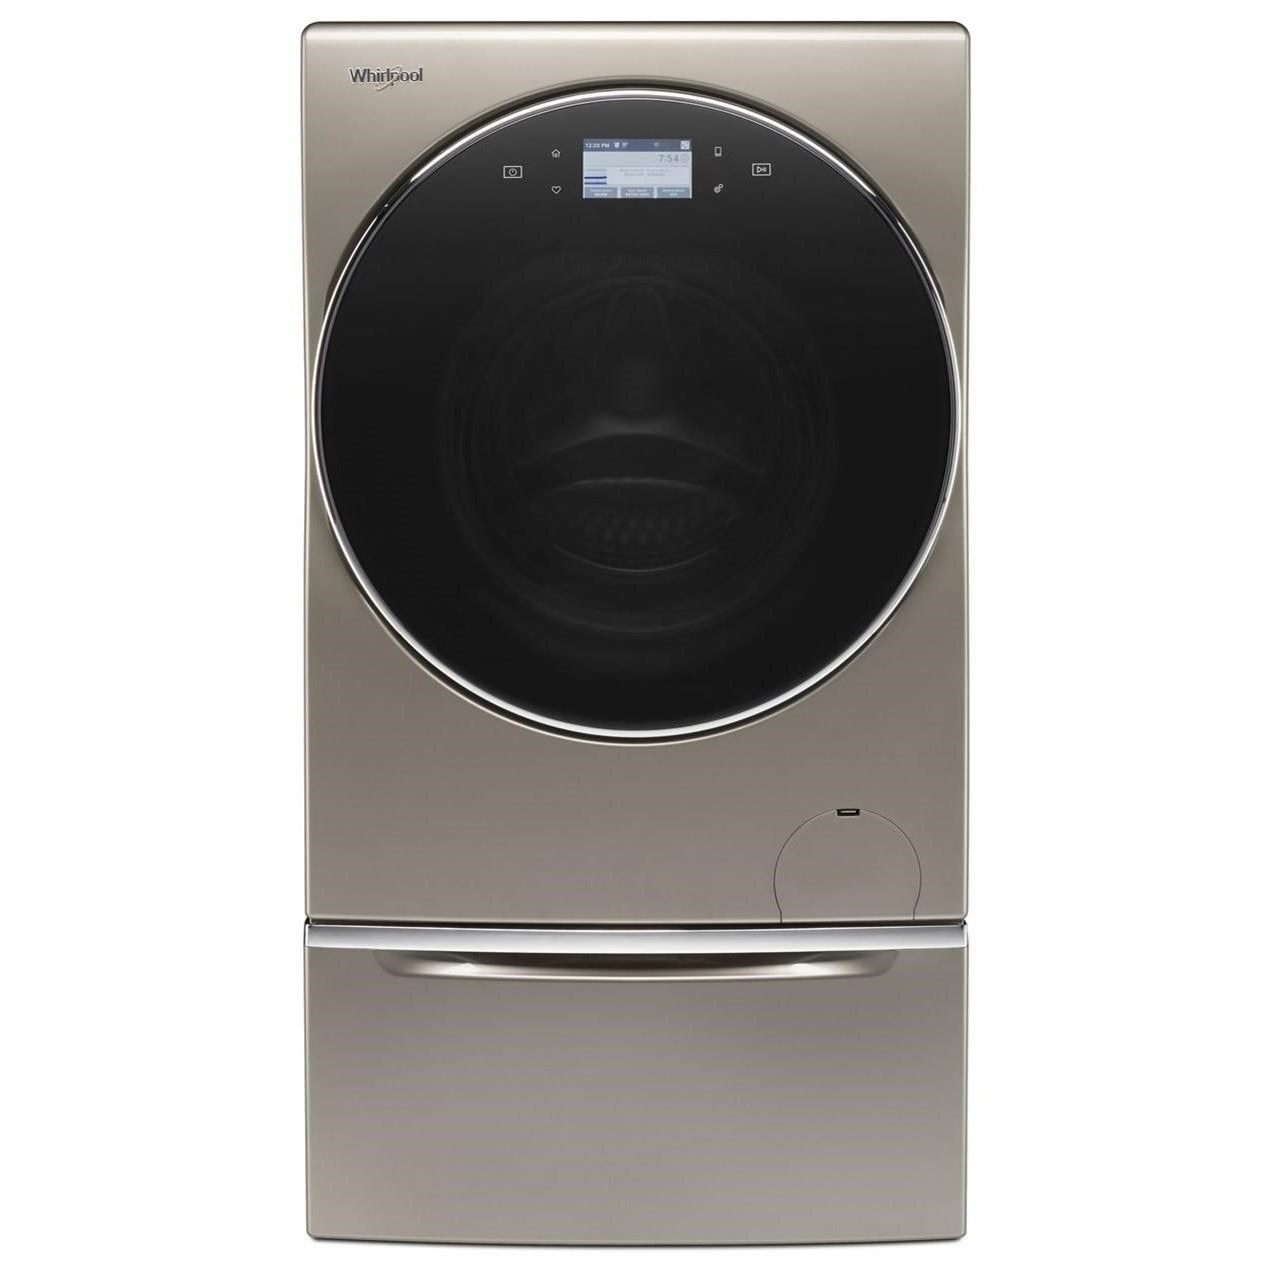 All-In-One Washer & Dryer Combo 2.8 Cu. Ft. Smart All-In-One Washer & Dryer by Whirlpool at Furniture and ApplianceMart